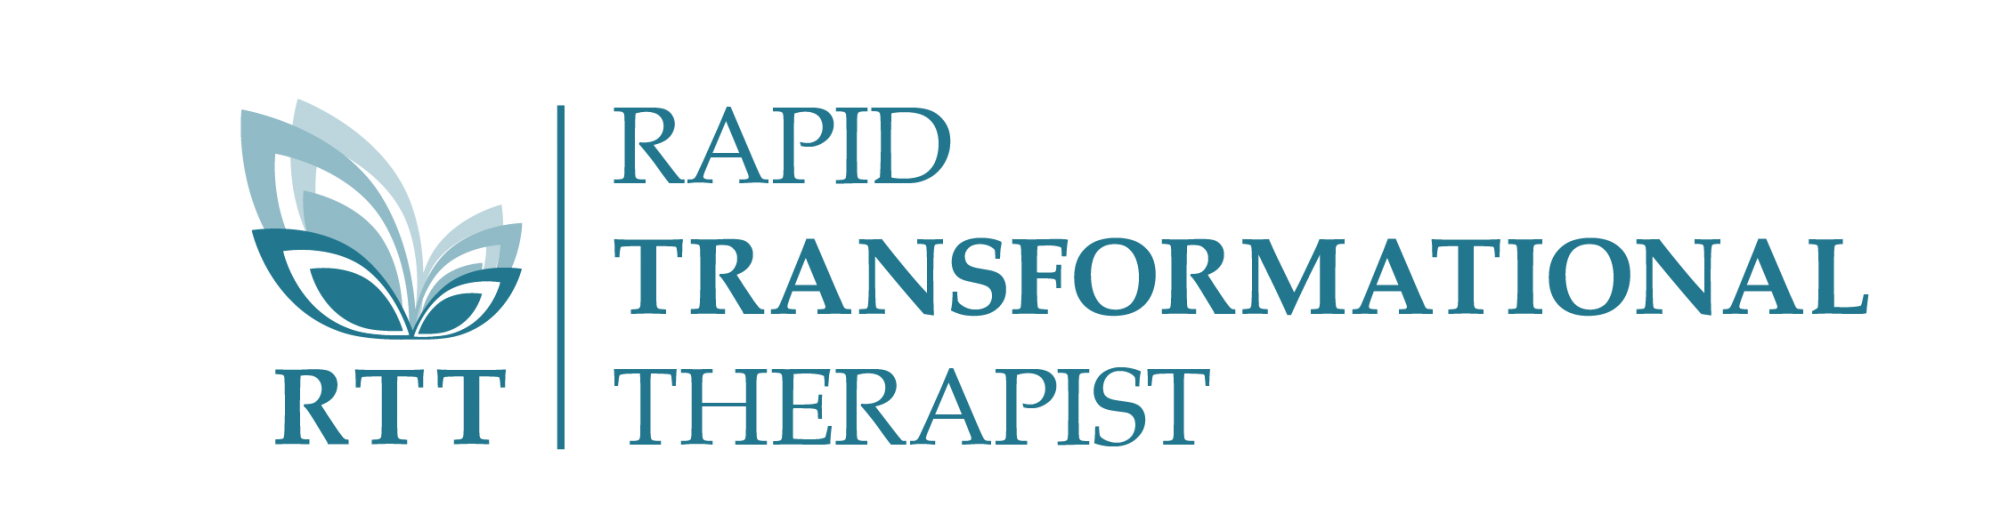 Rapid Transformational Therapist